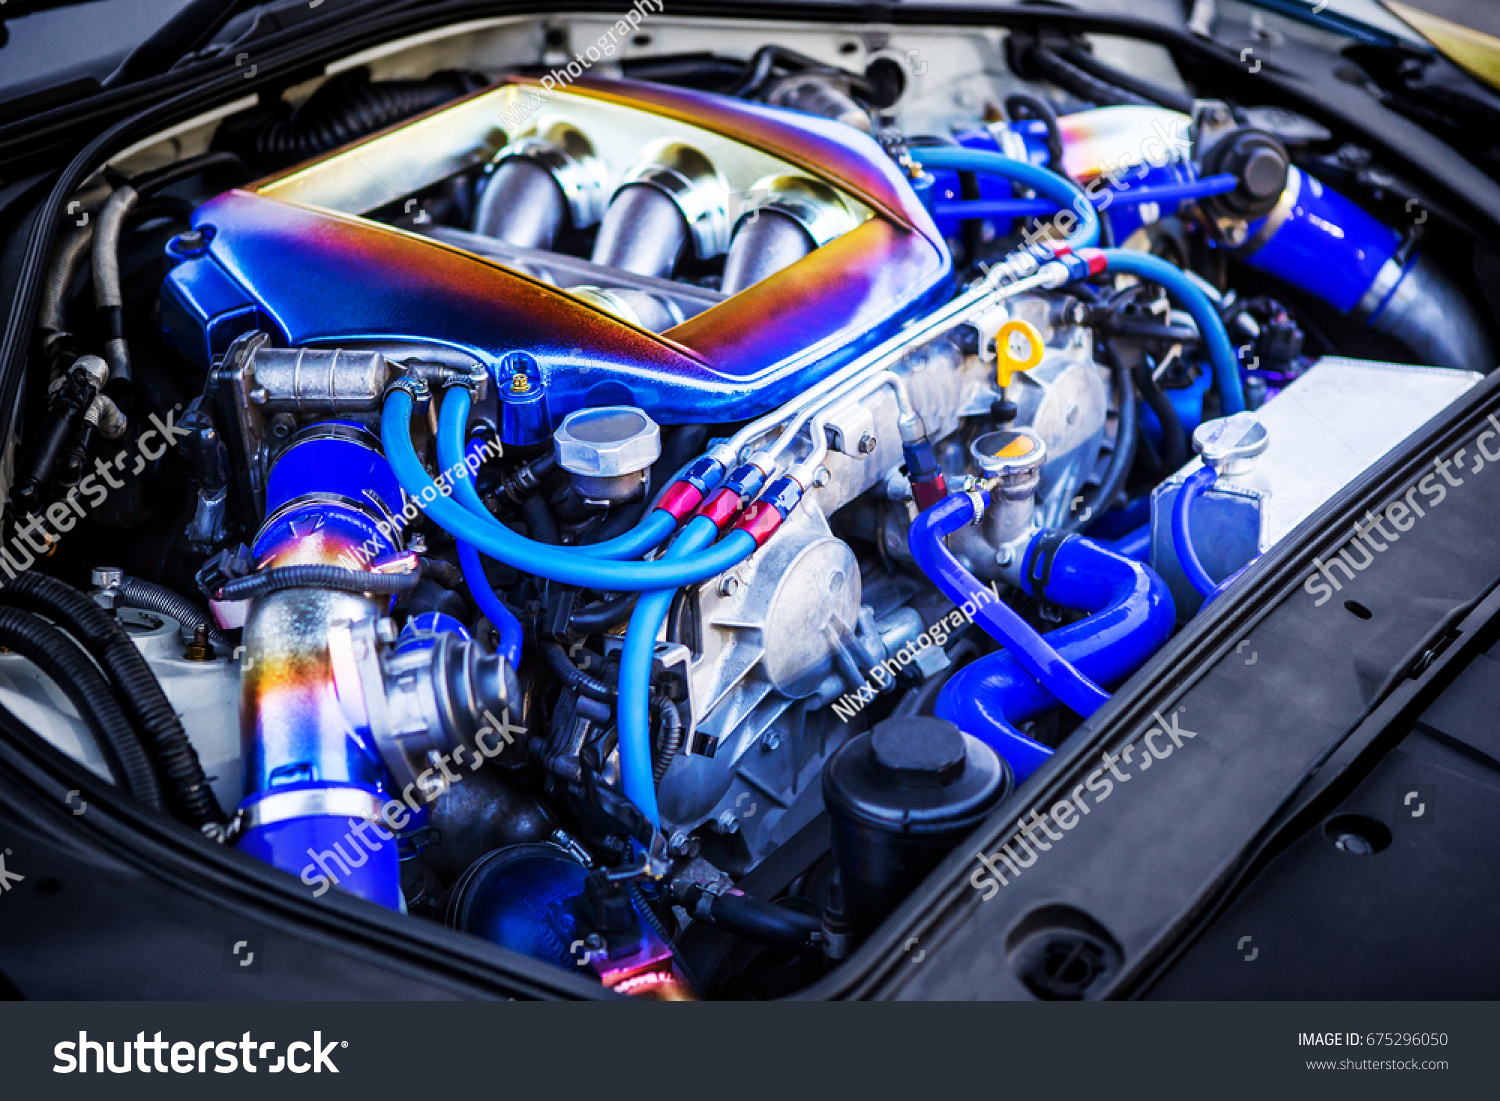 High Precision Muscle Car Engine Customized Stock Photo Edit Now 675296050